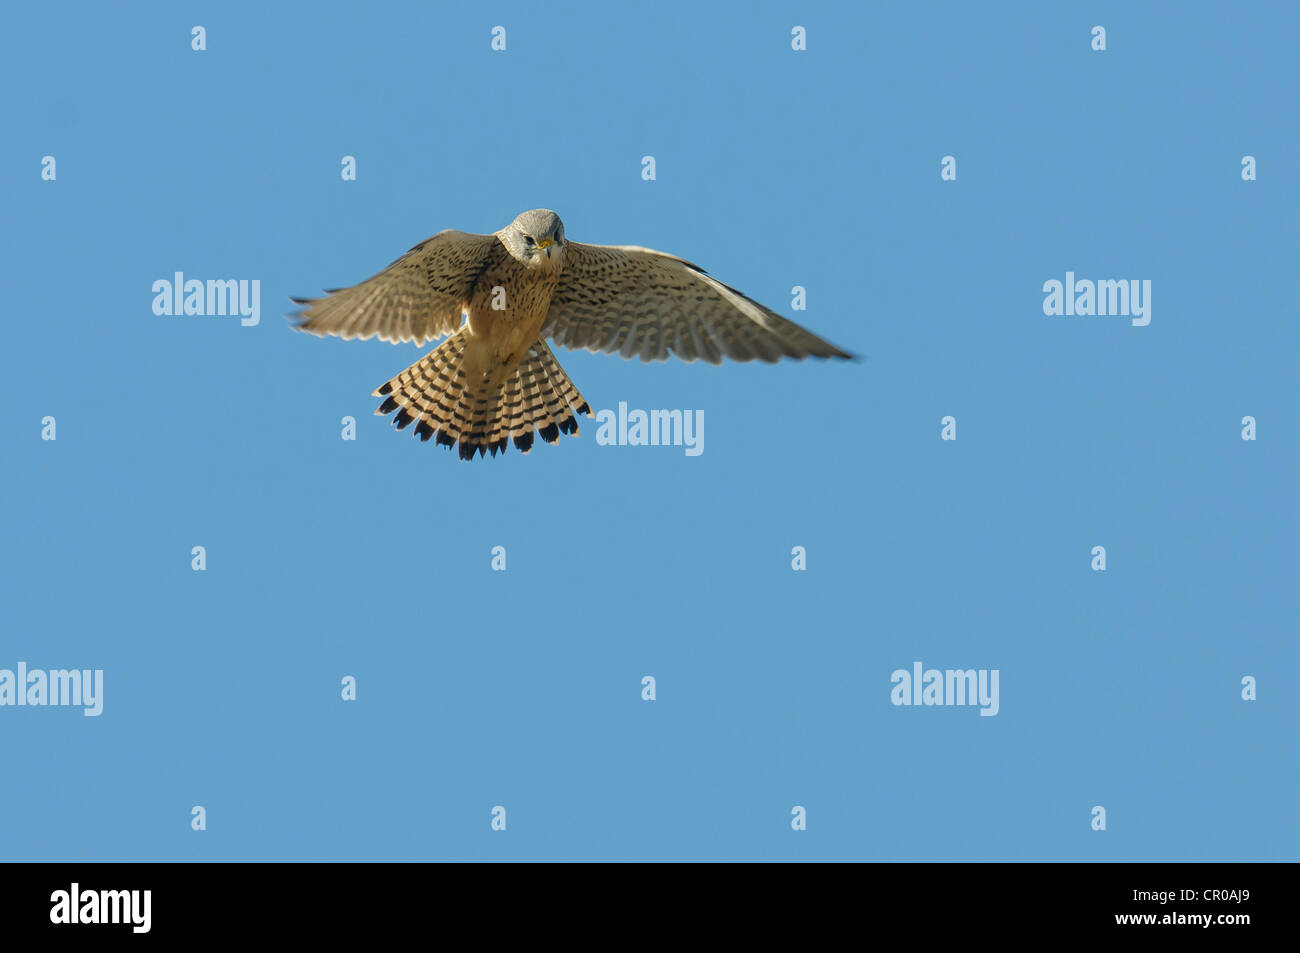 Faucon crécerelle (Falco tinnunculus) mâle en vol stationnaire. Norfolk, Angleterre. Mai. Photo Stock